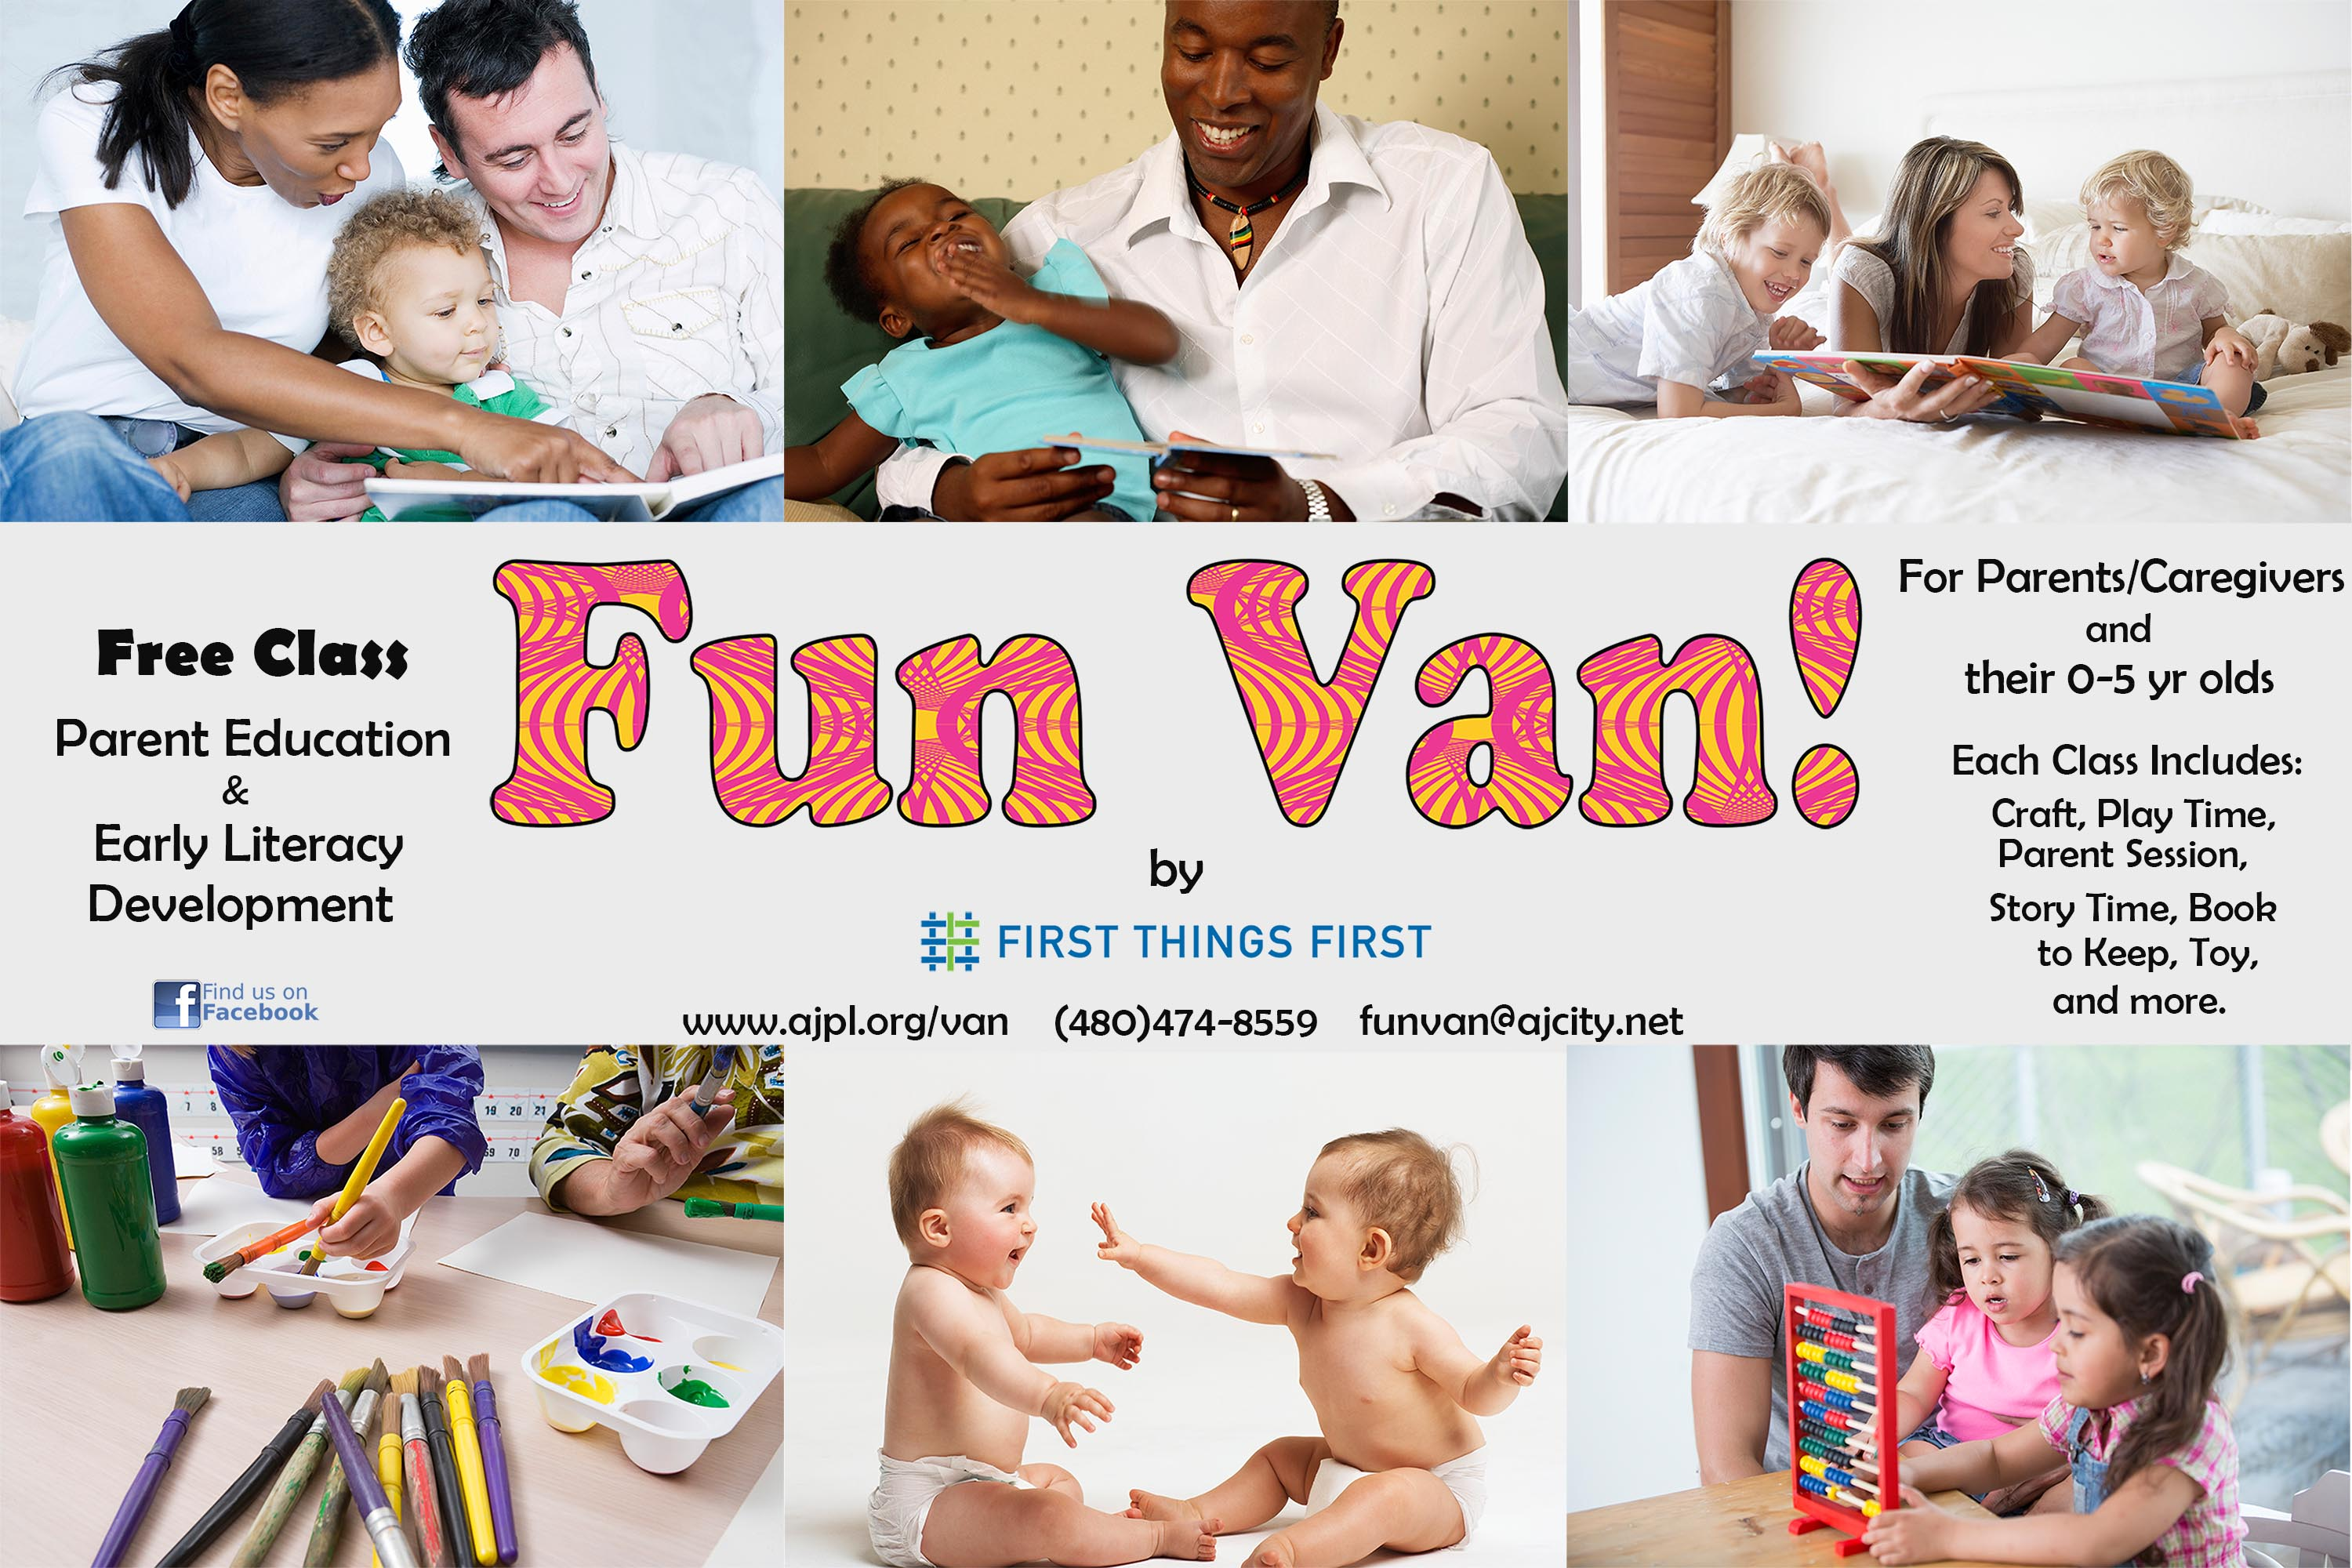 Fun Van supported by First Things First